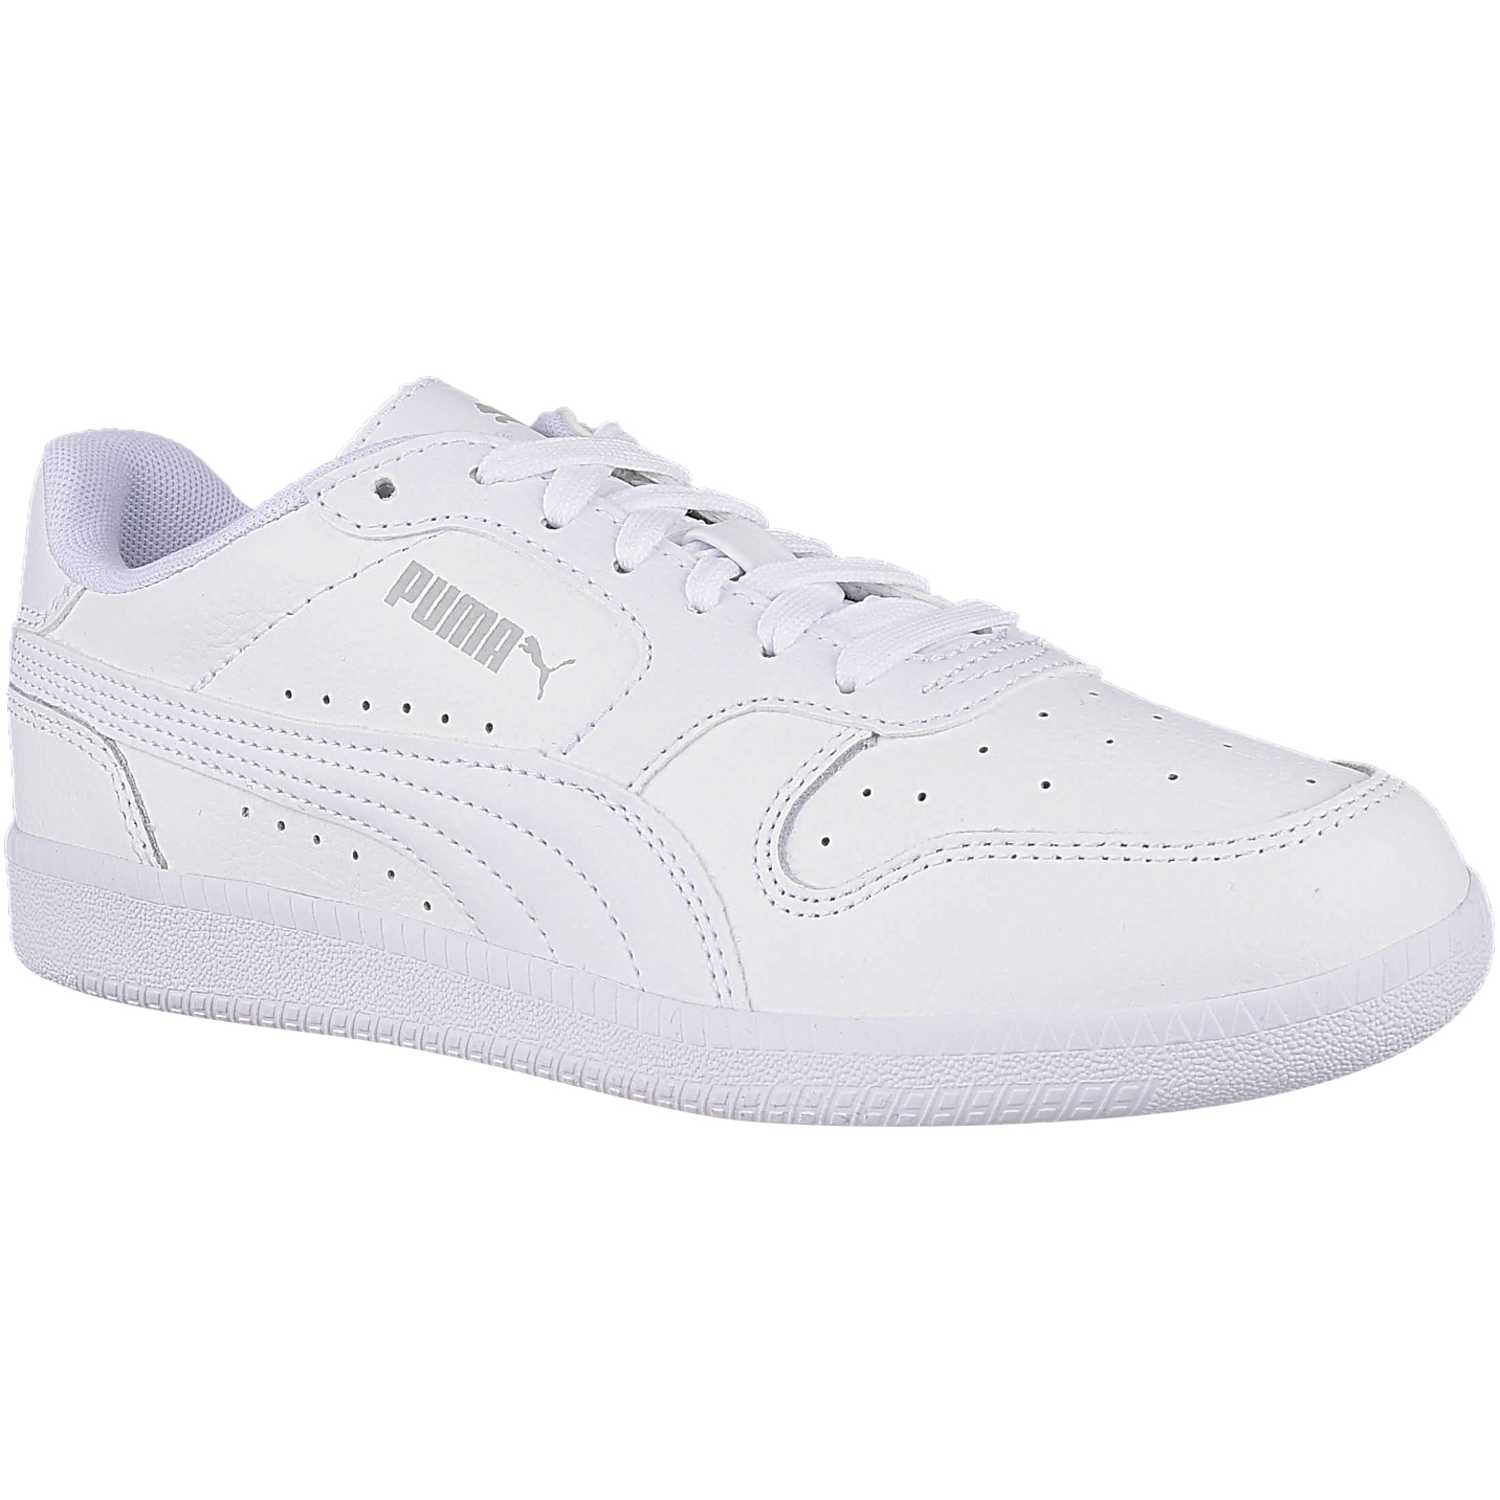 Puma icra trainer jr Blanco Walking